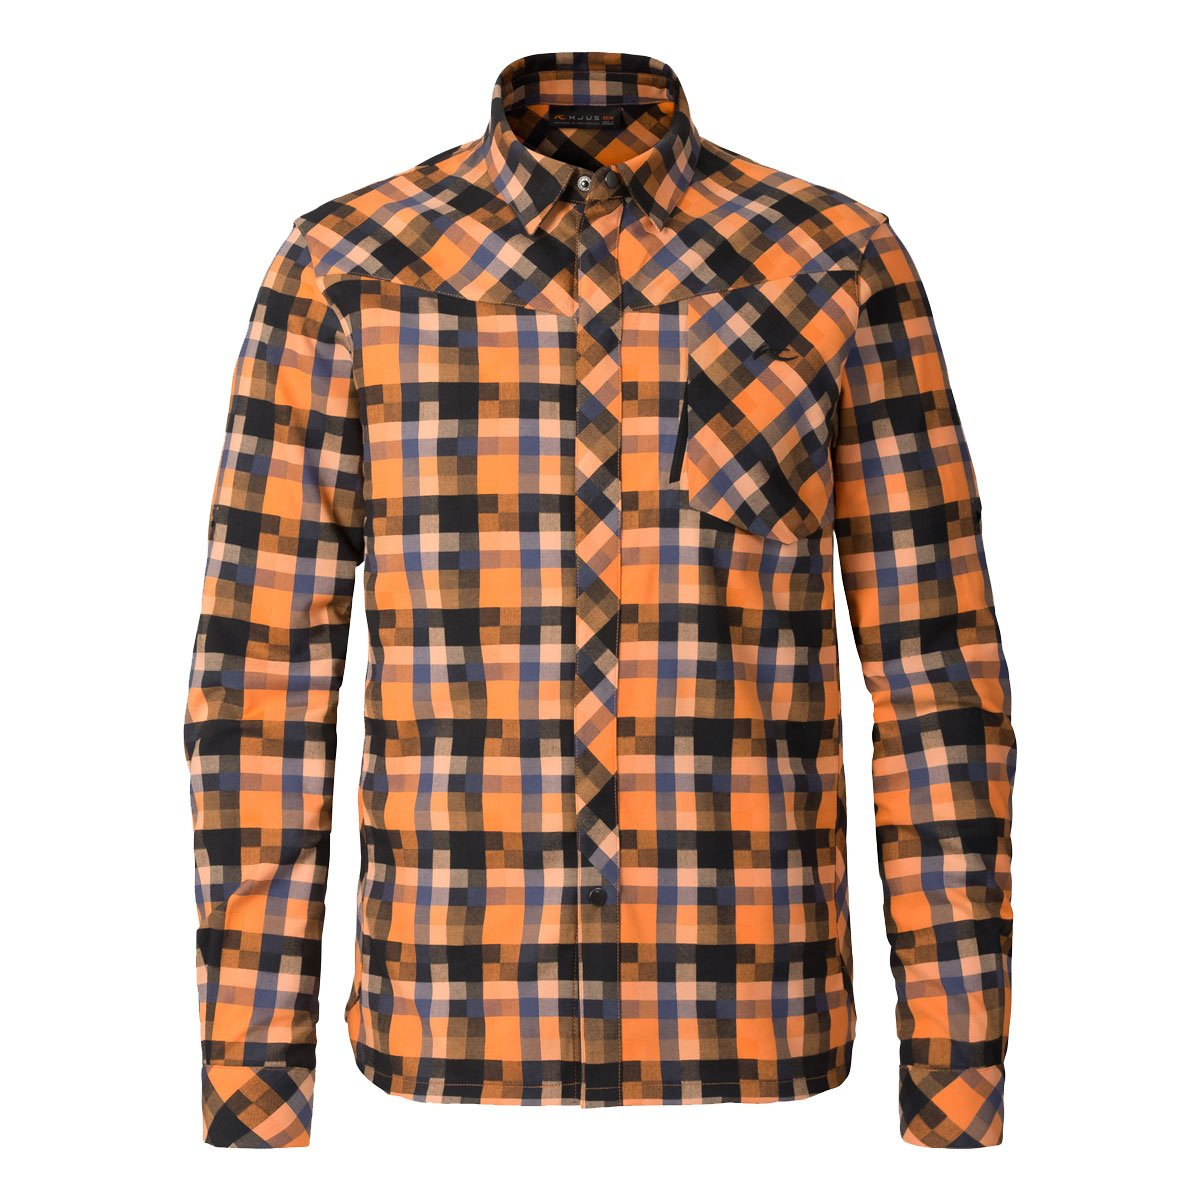 KJUS Herren Flanellhemd Funktionsshirt Men FRX Shirt MS25-A12 Orange